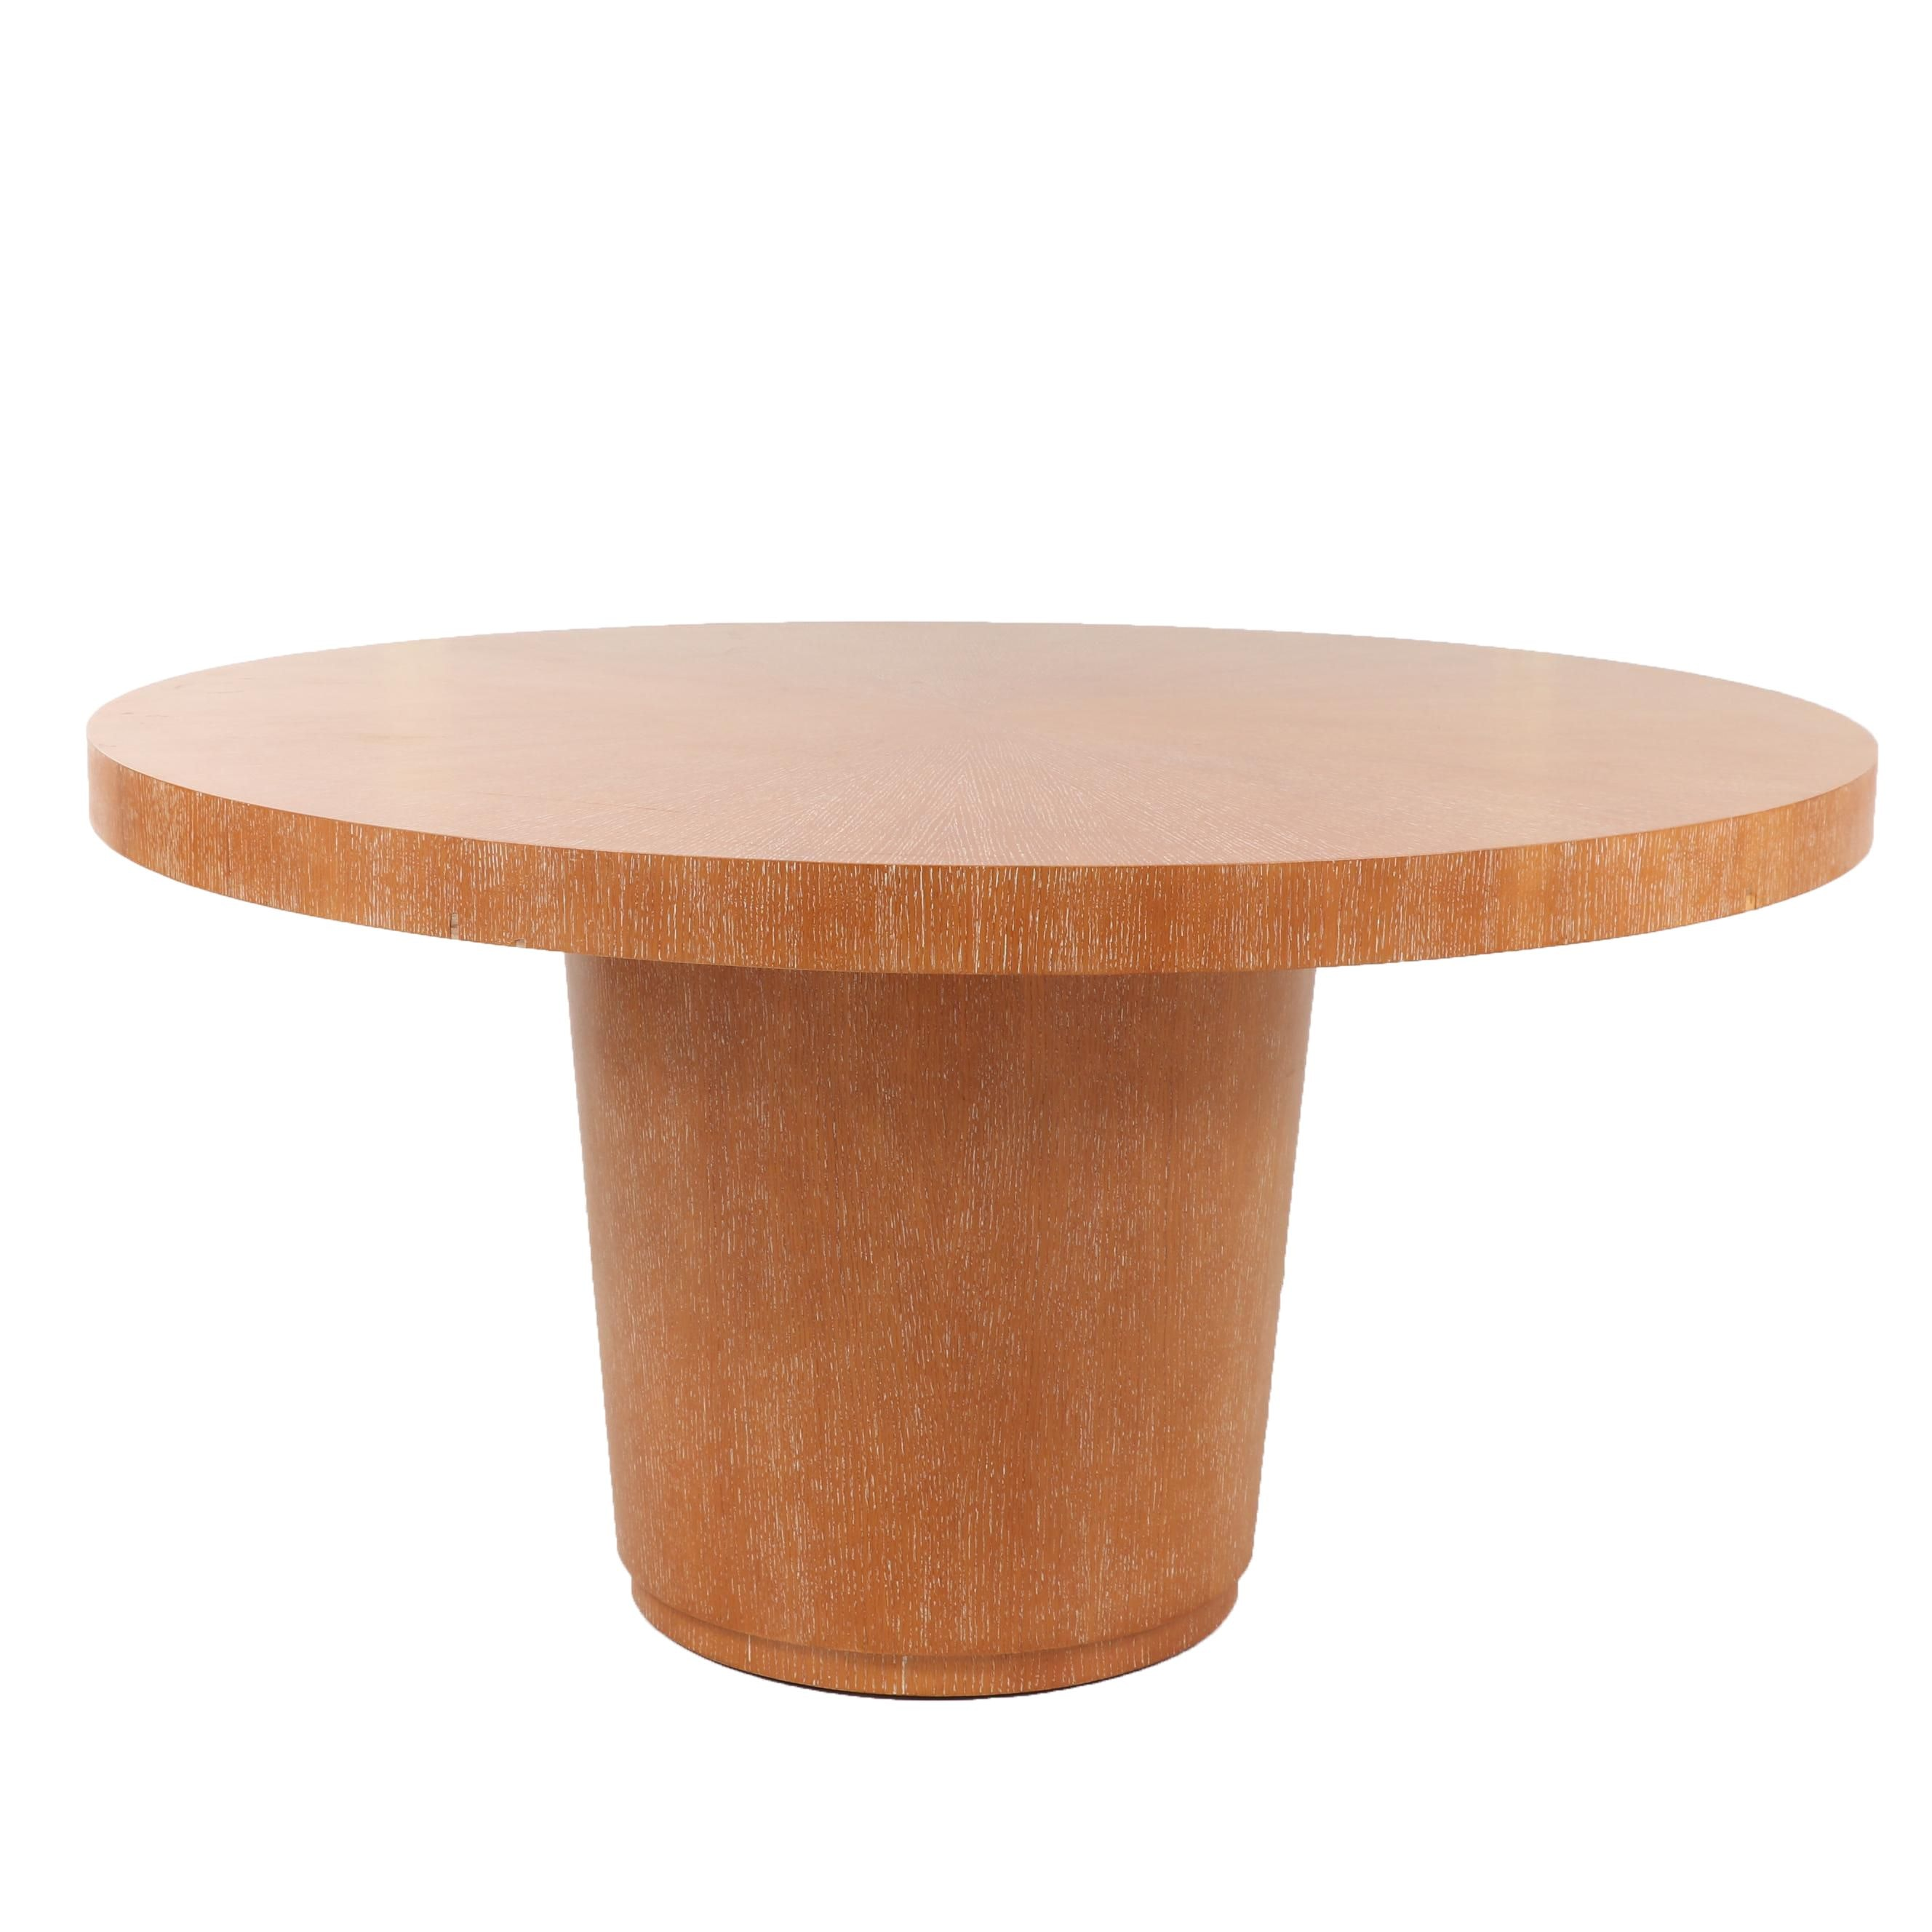 Contemporary Round Wooden Dining Table with Cylindrical Base